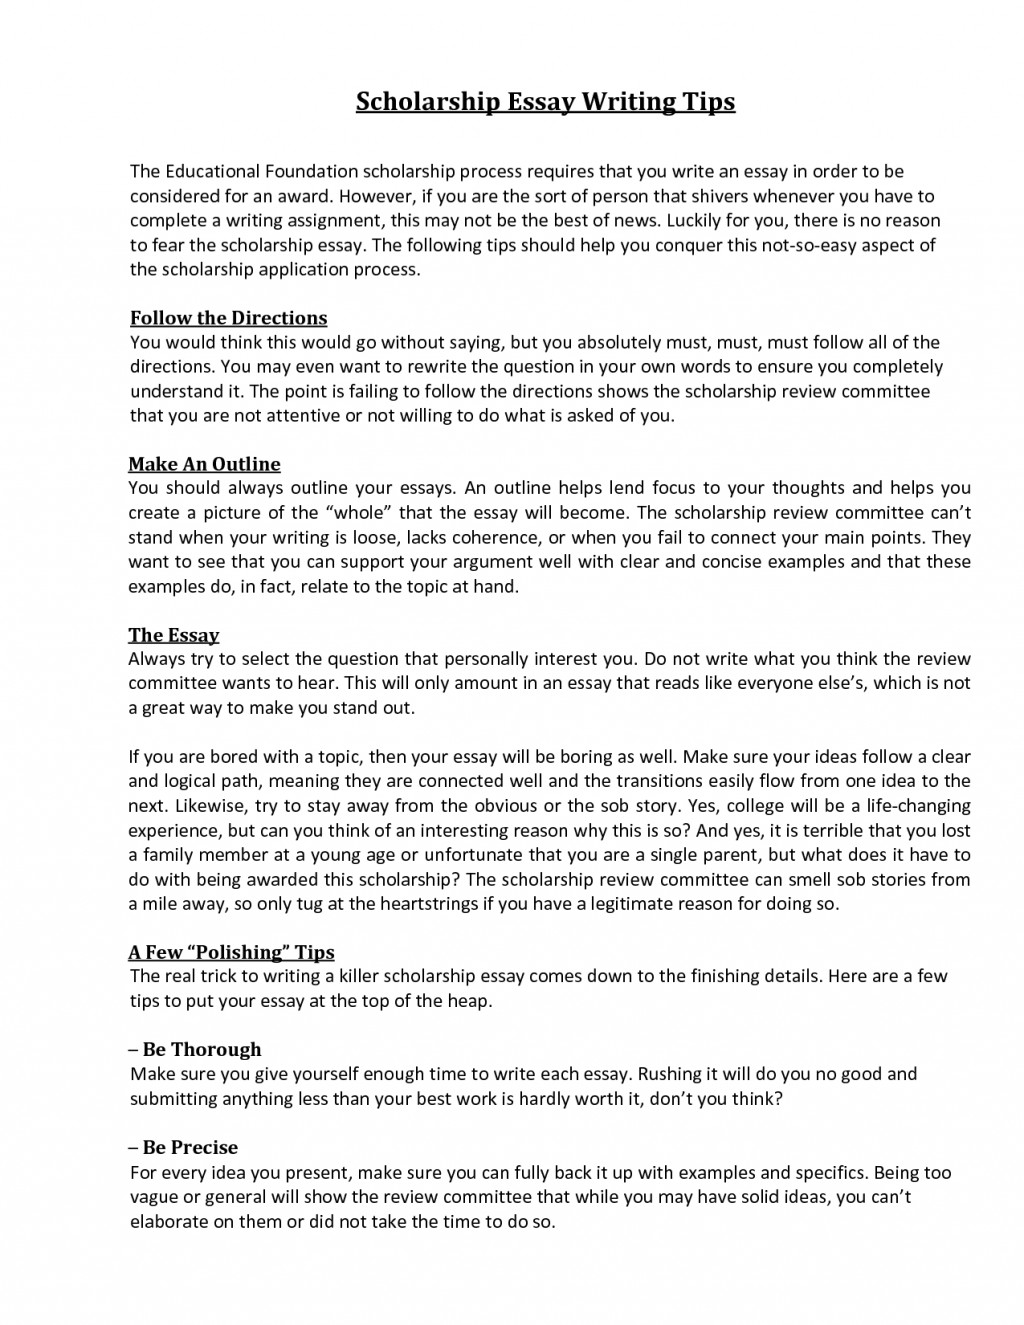 017 Write Essay Awful A About Your Best Friend Descriptive On Freedom Fighter Large